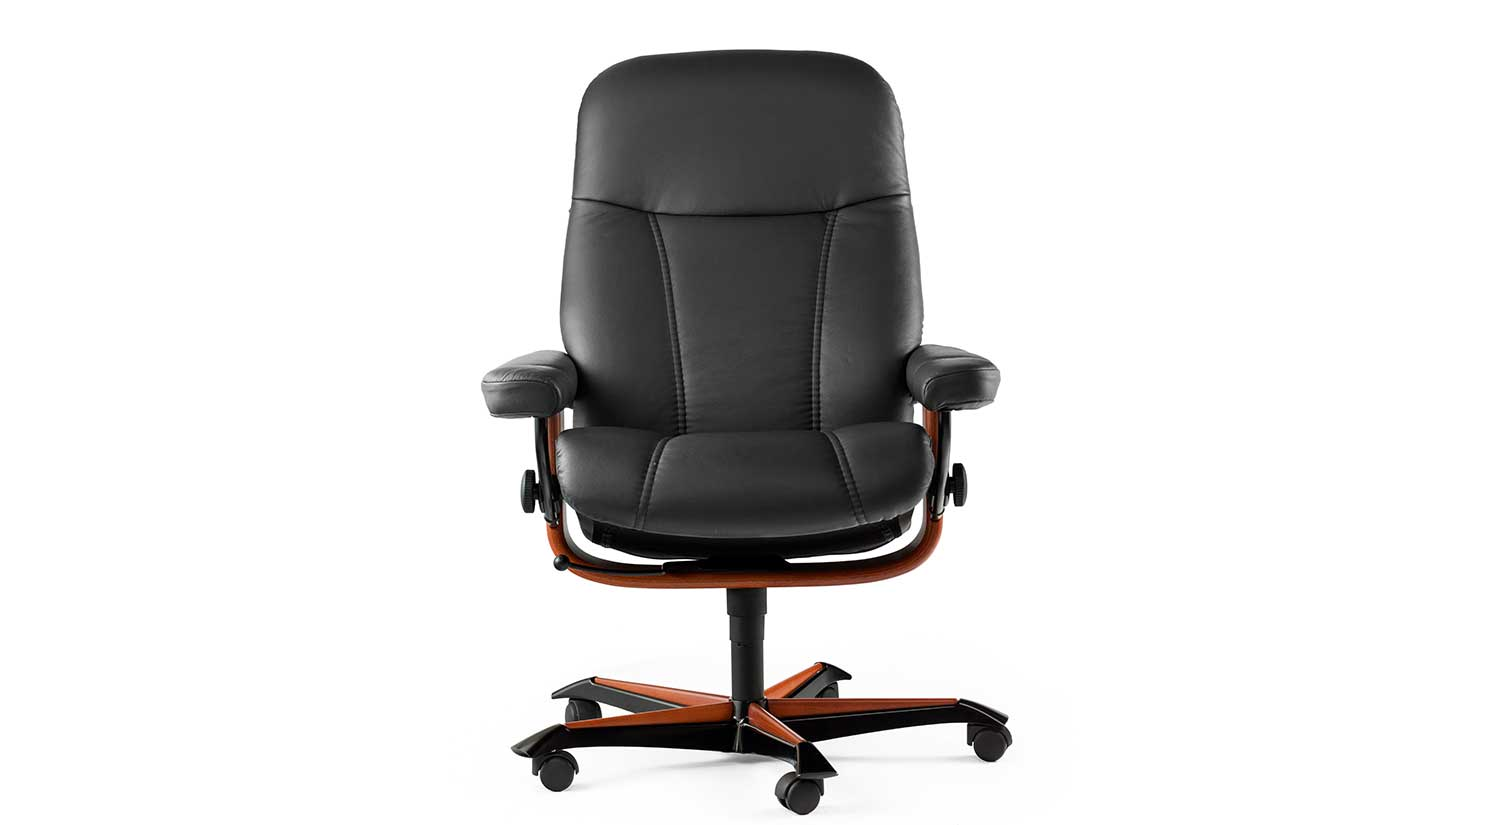 ergonomic chair description slipcovered parsons chairs circle furniture stressless consul office